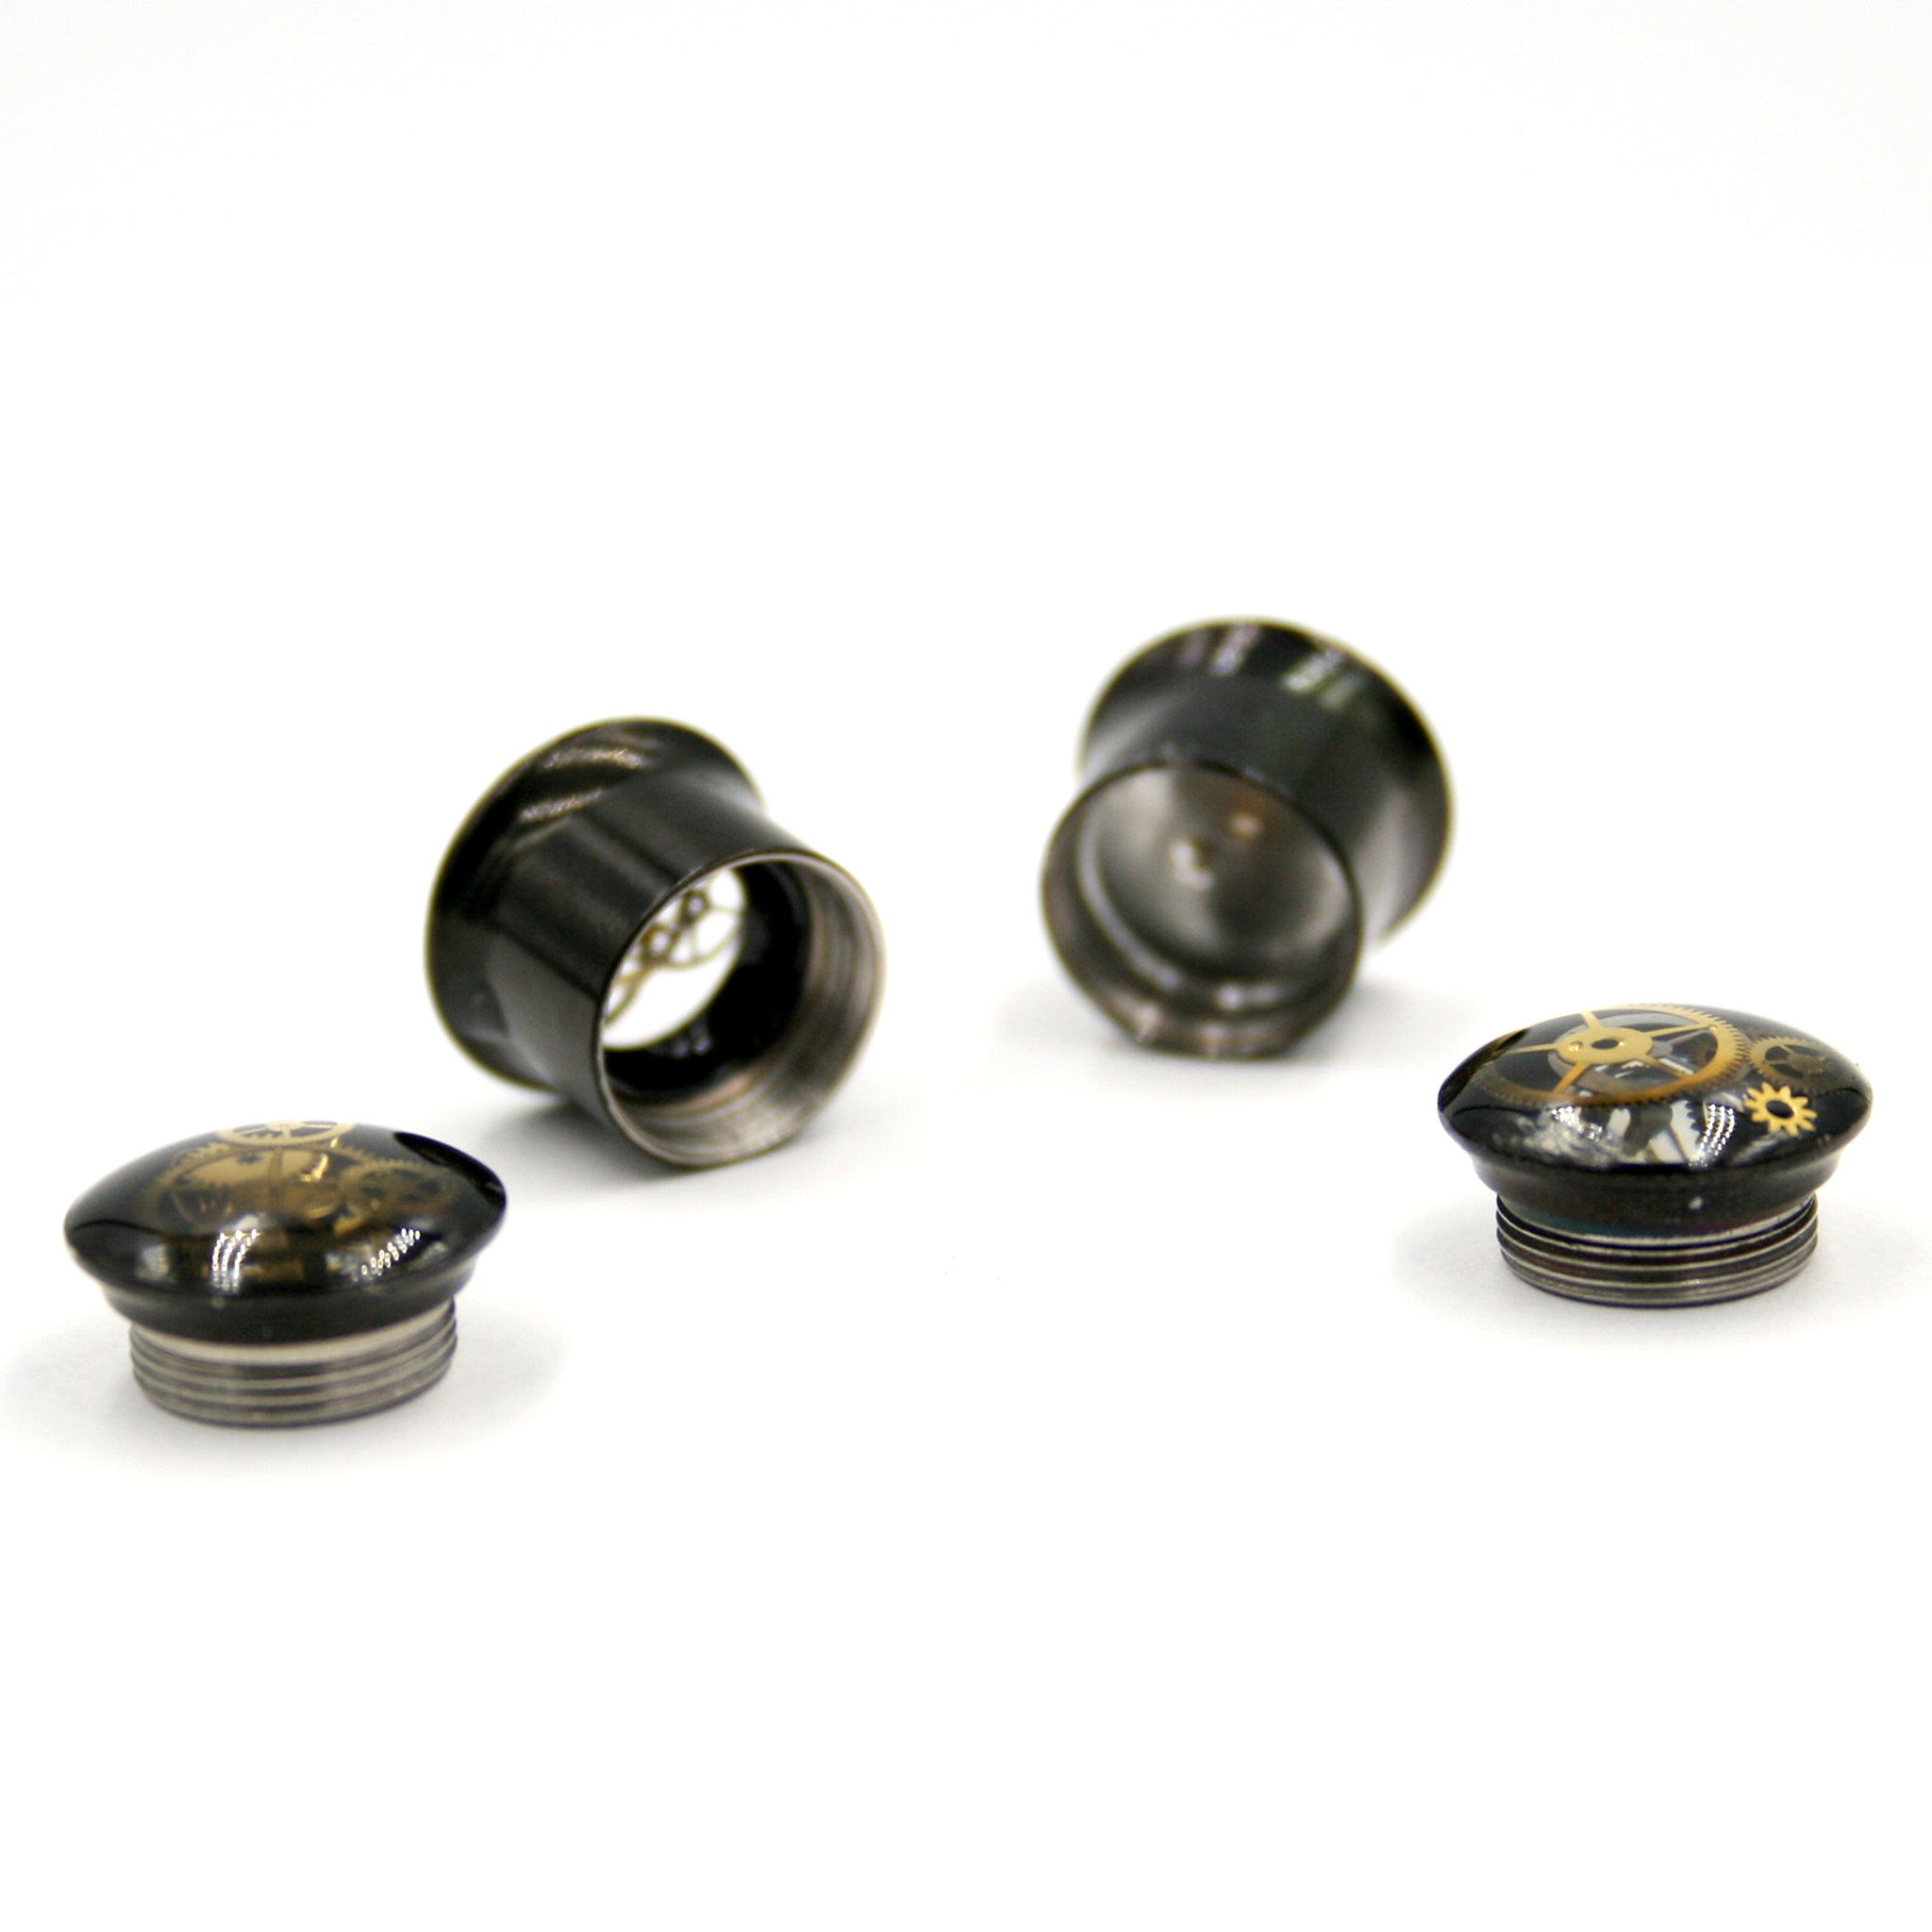 Cool 16mm ear gauges in steampunk style screw back for easy fit